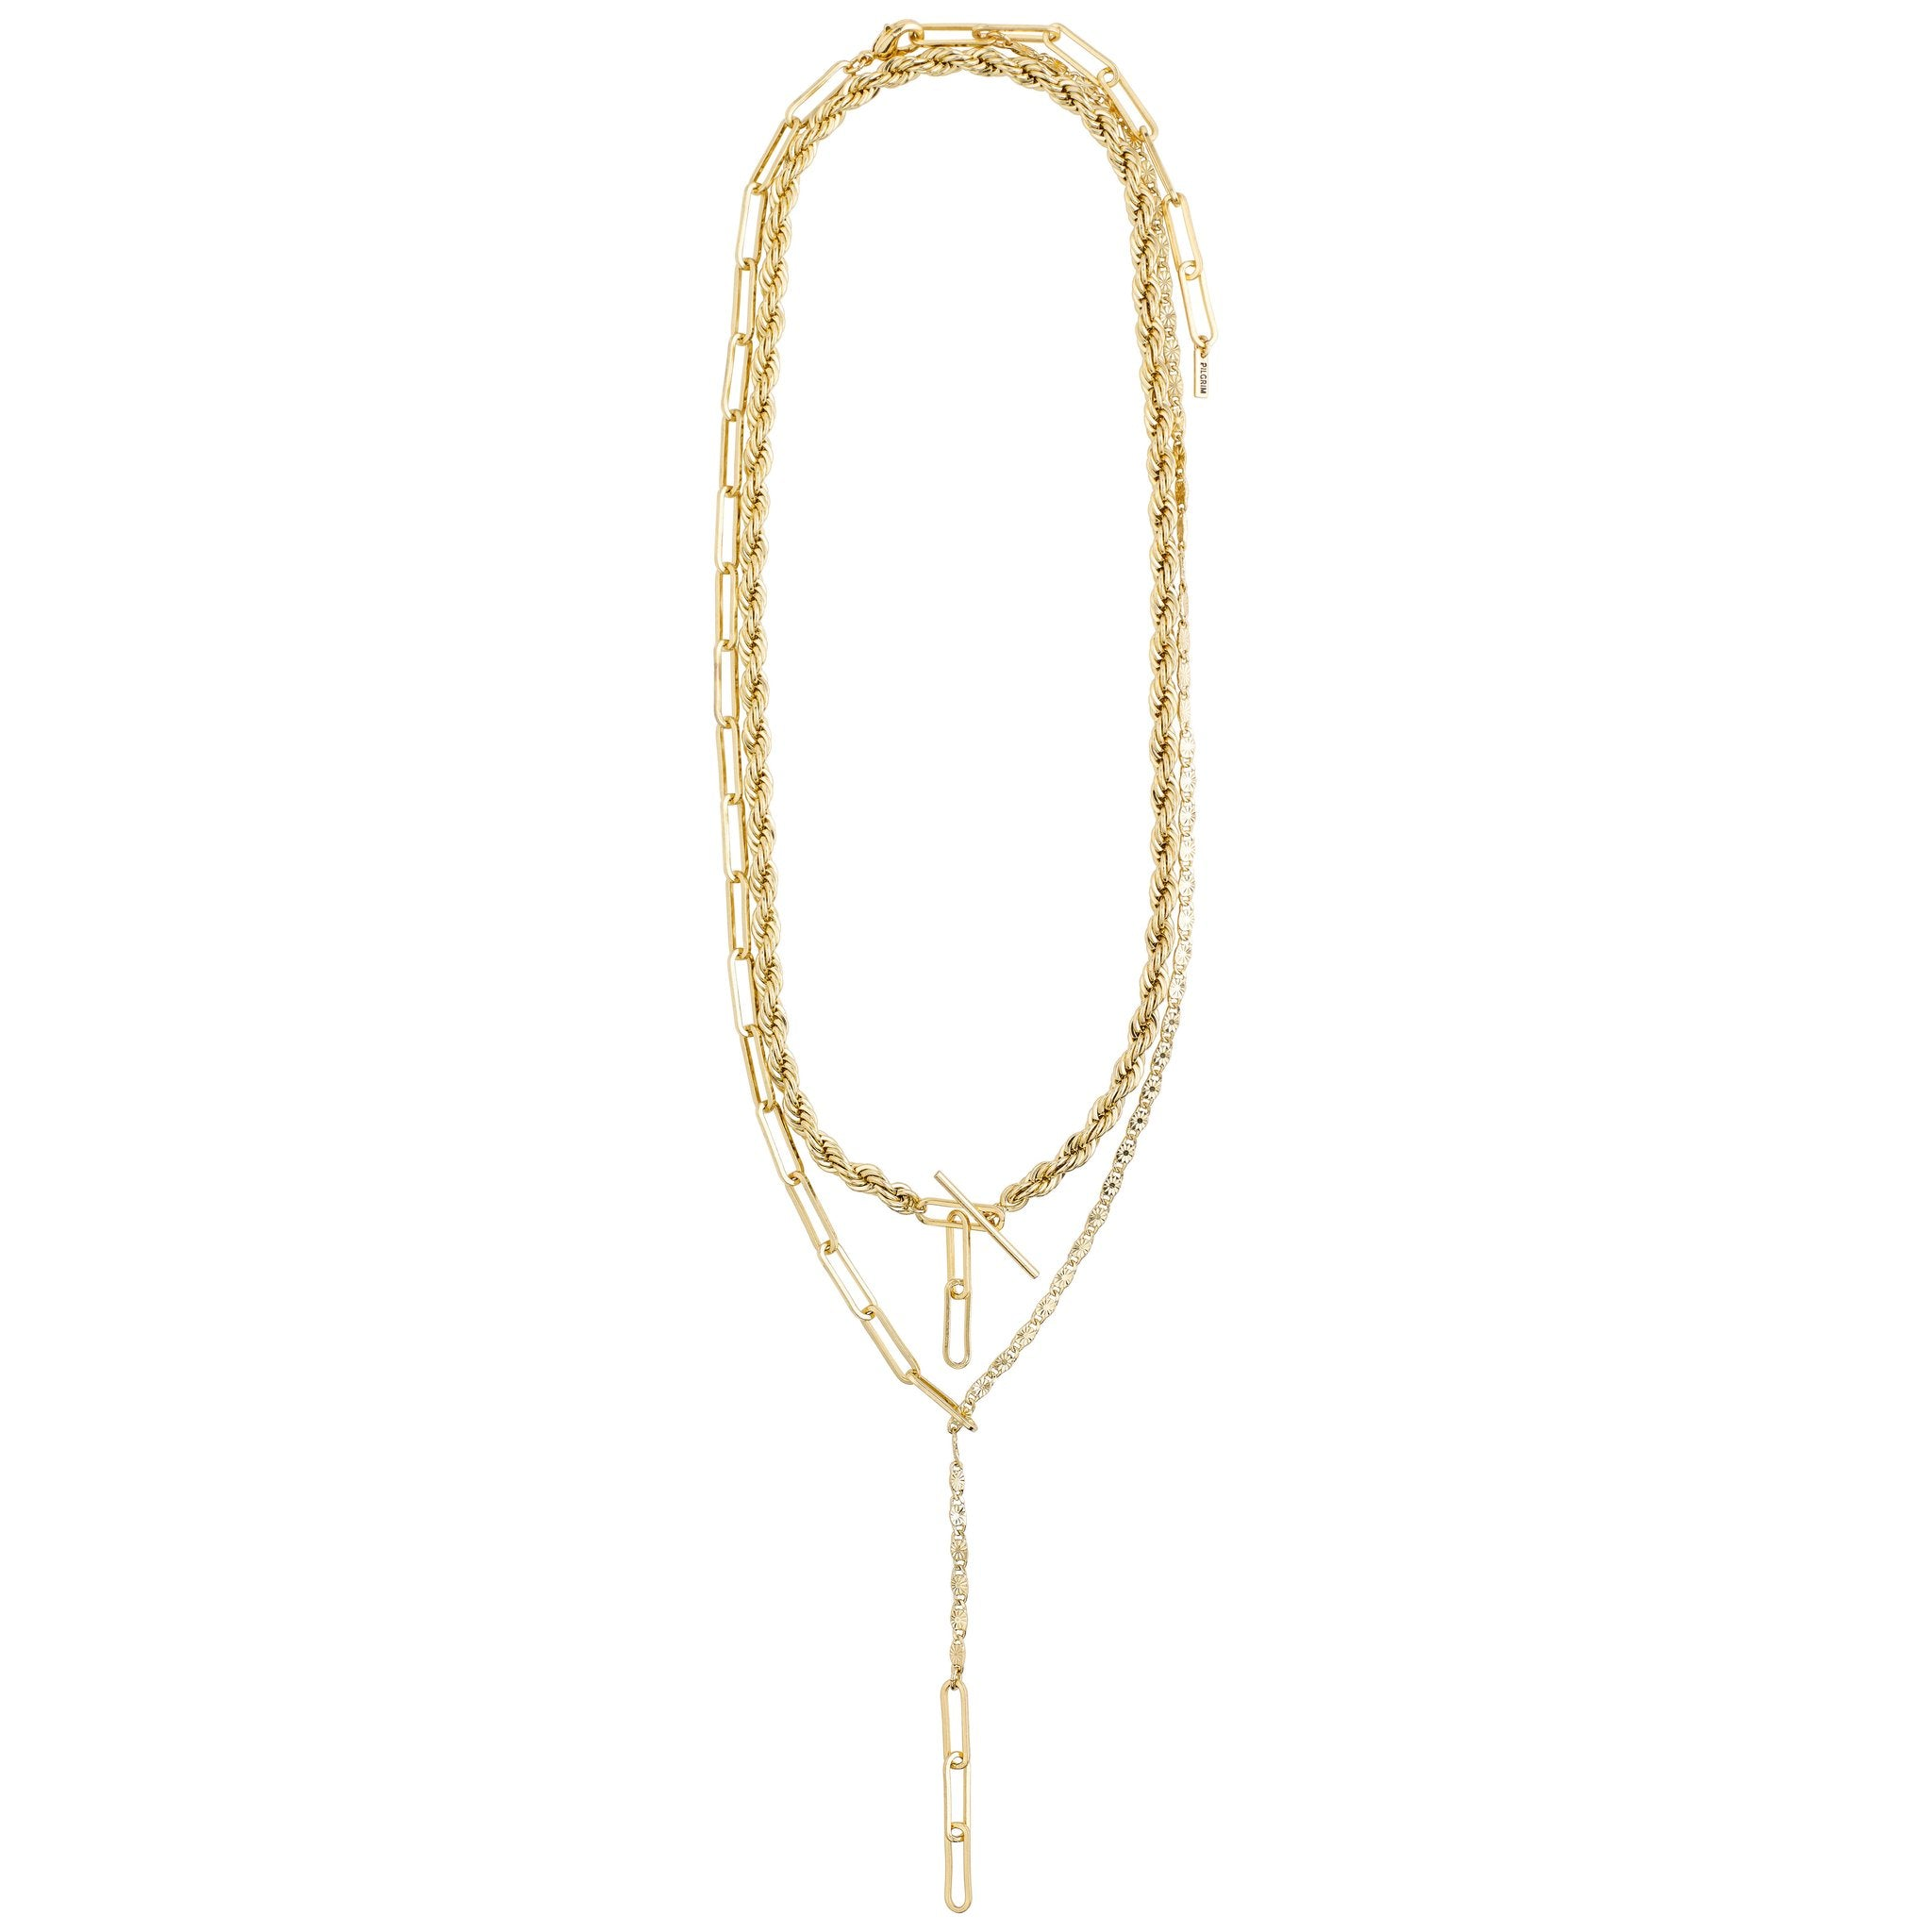 Simplicity Necklace - Gold Plated